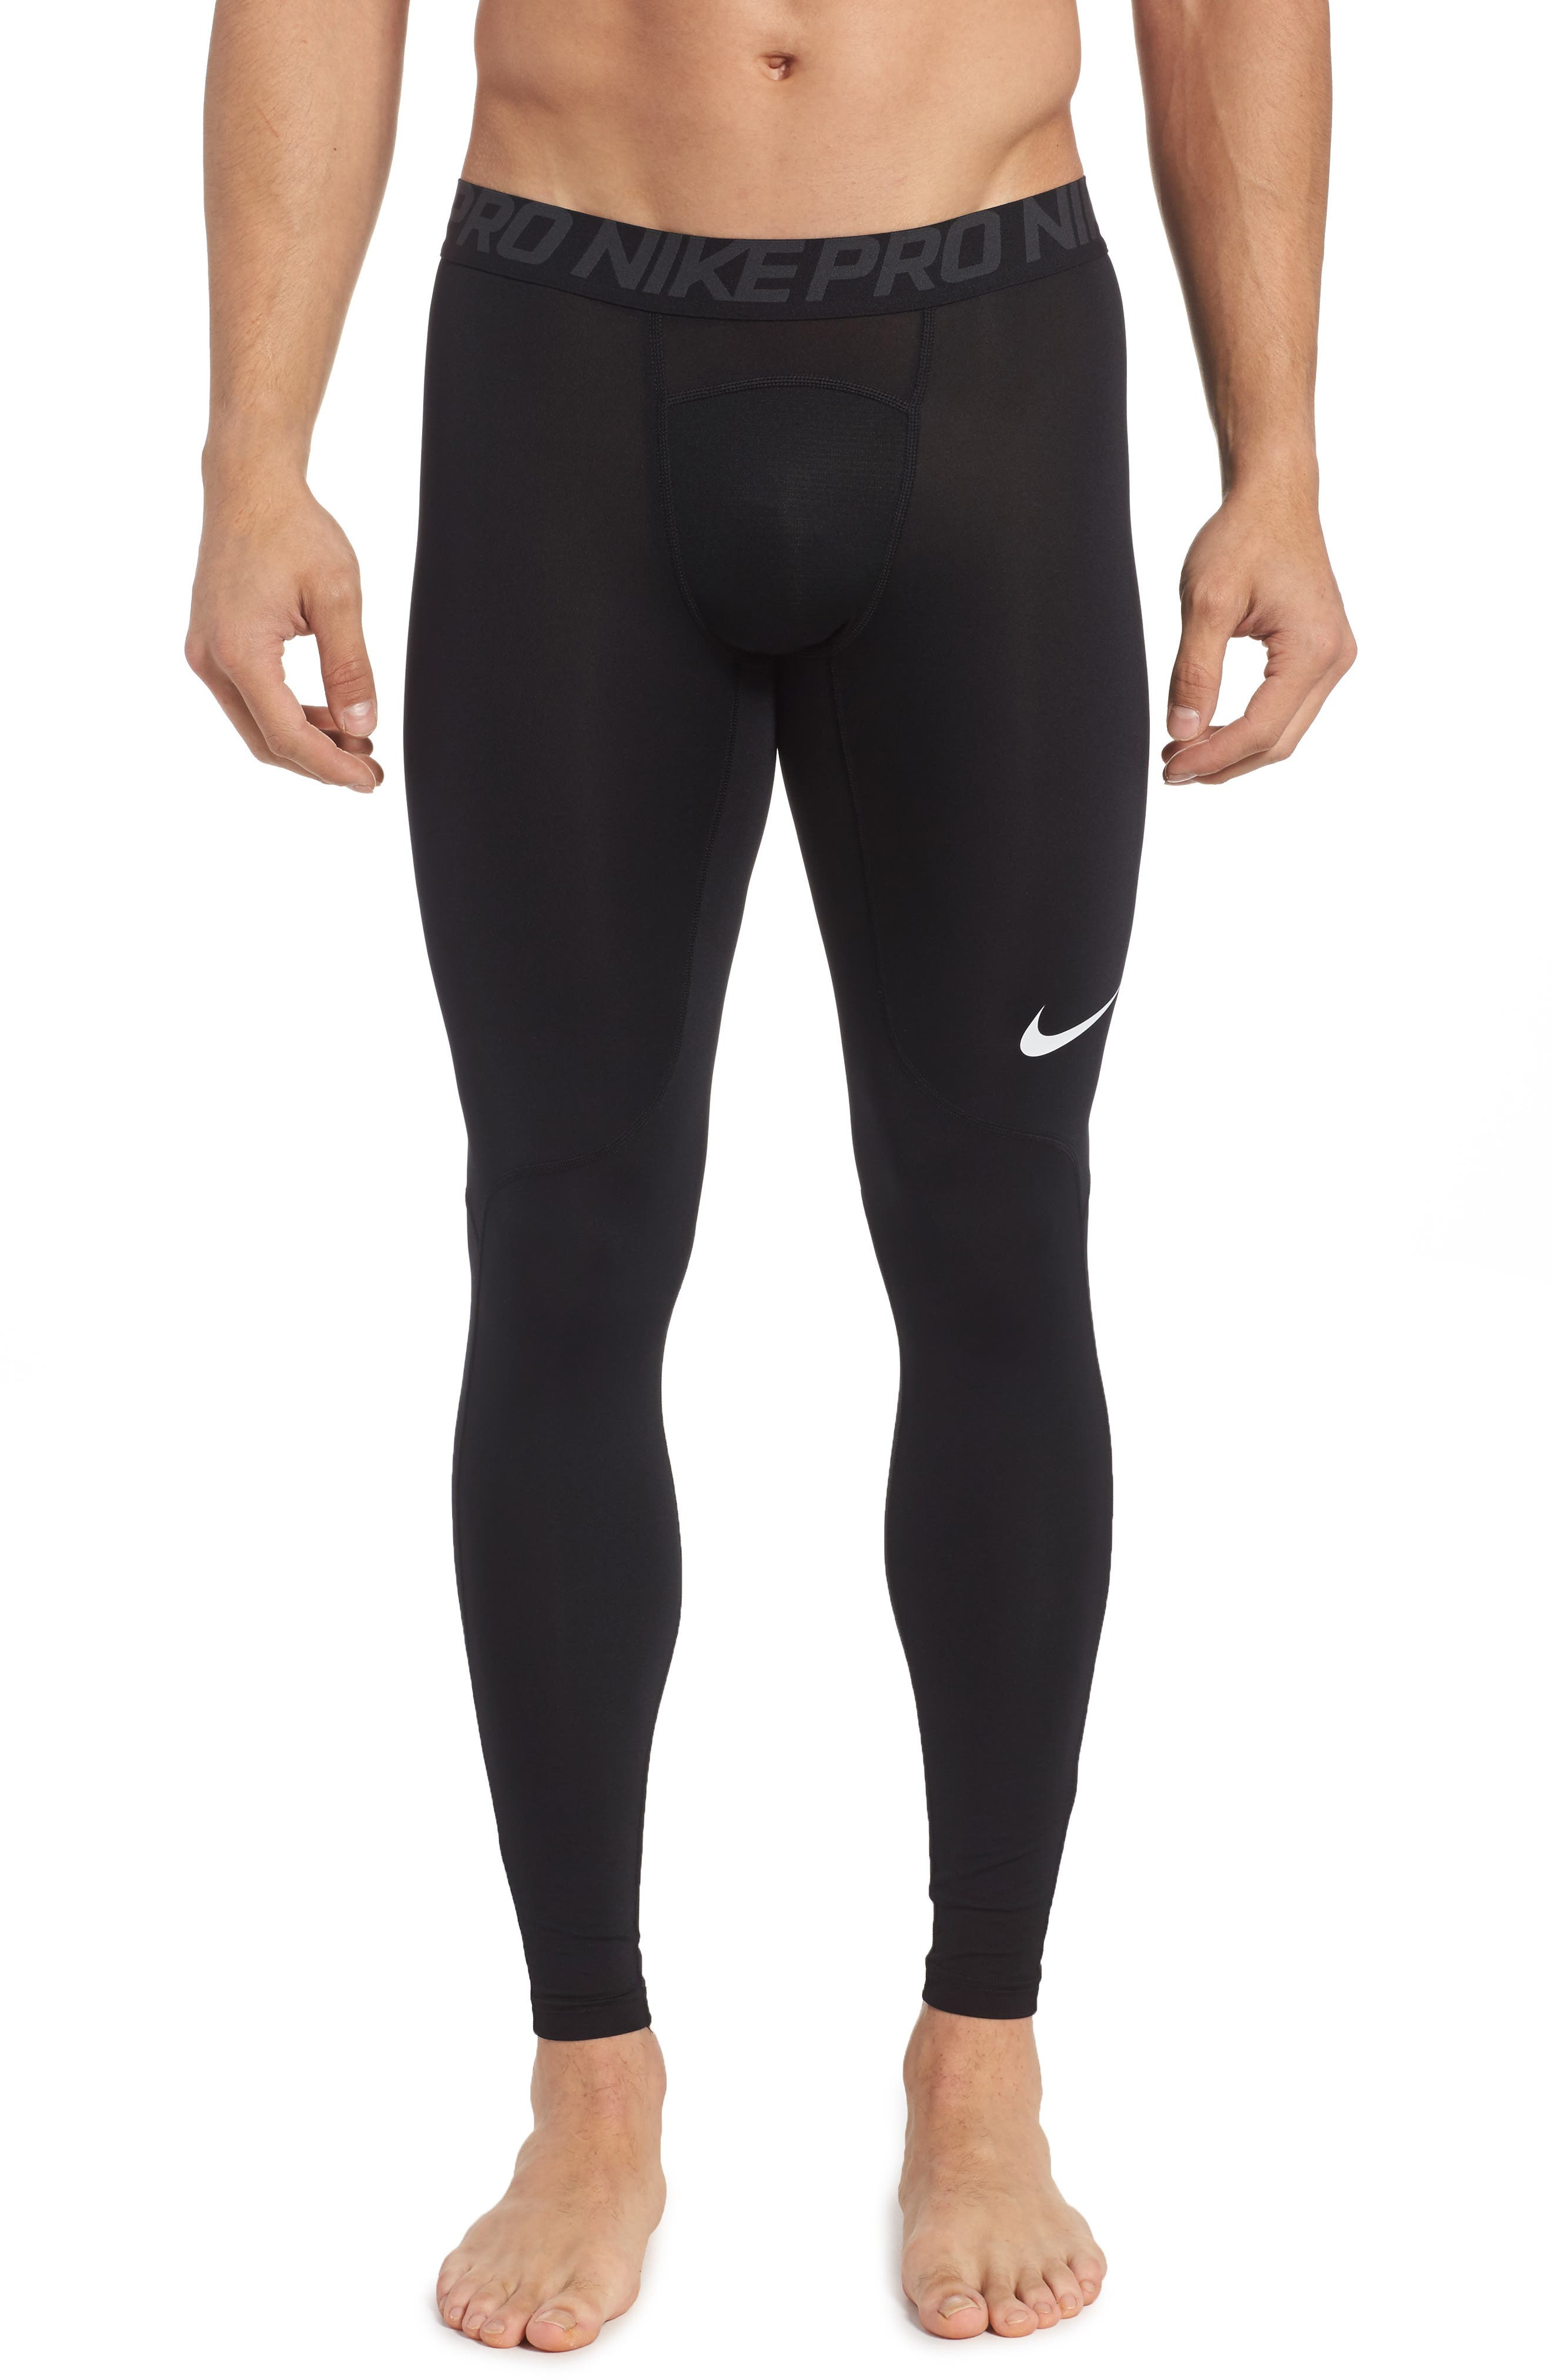 Pro Athletic Tights,                         Main,                         color, BLACK/ ANTHRACITE/ WHITE